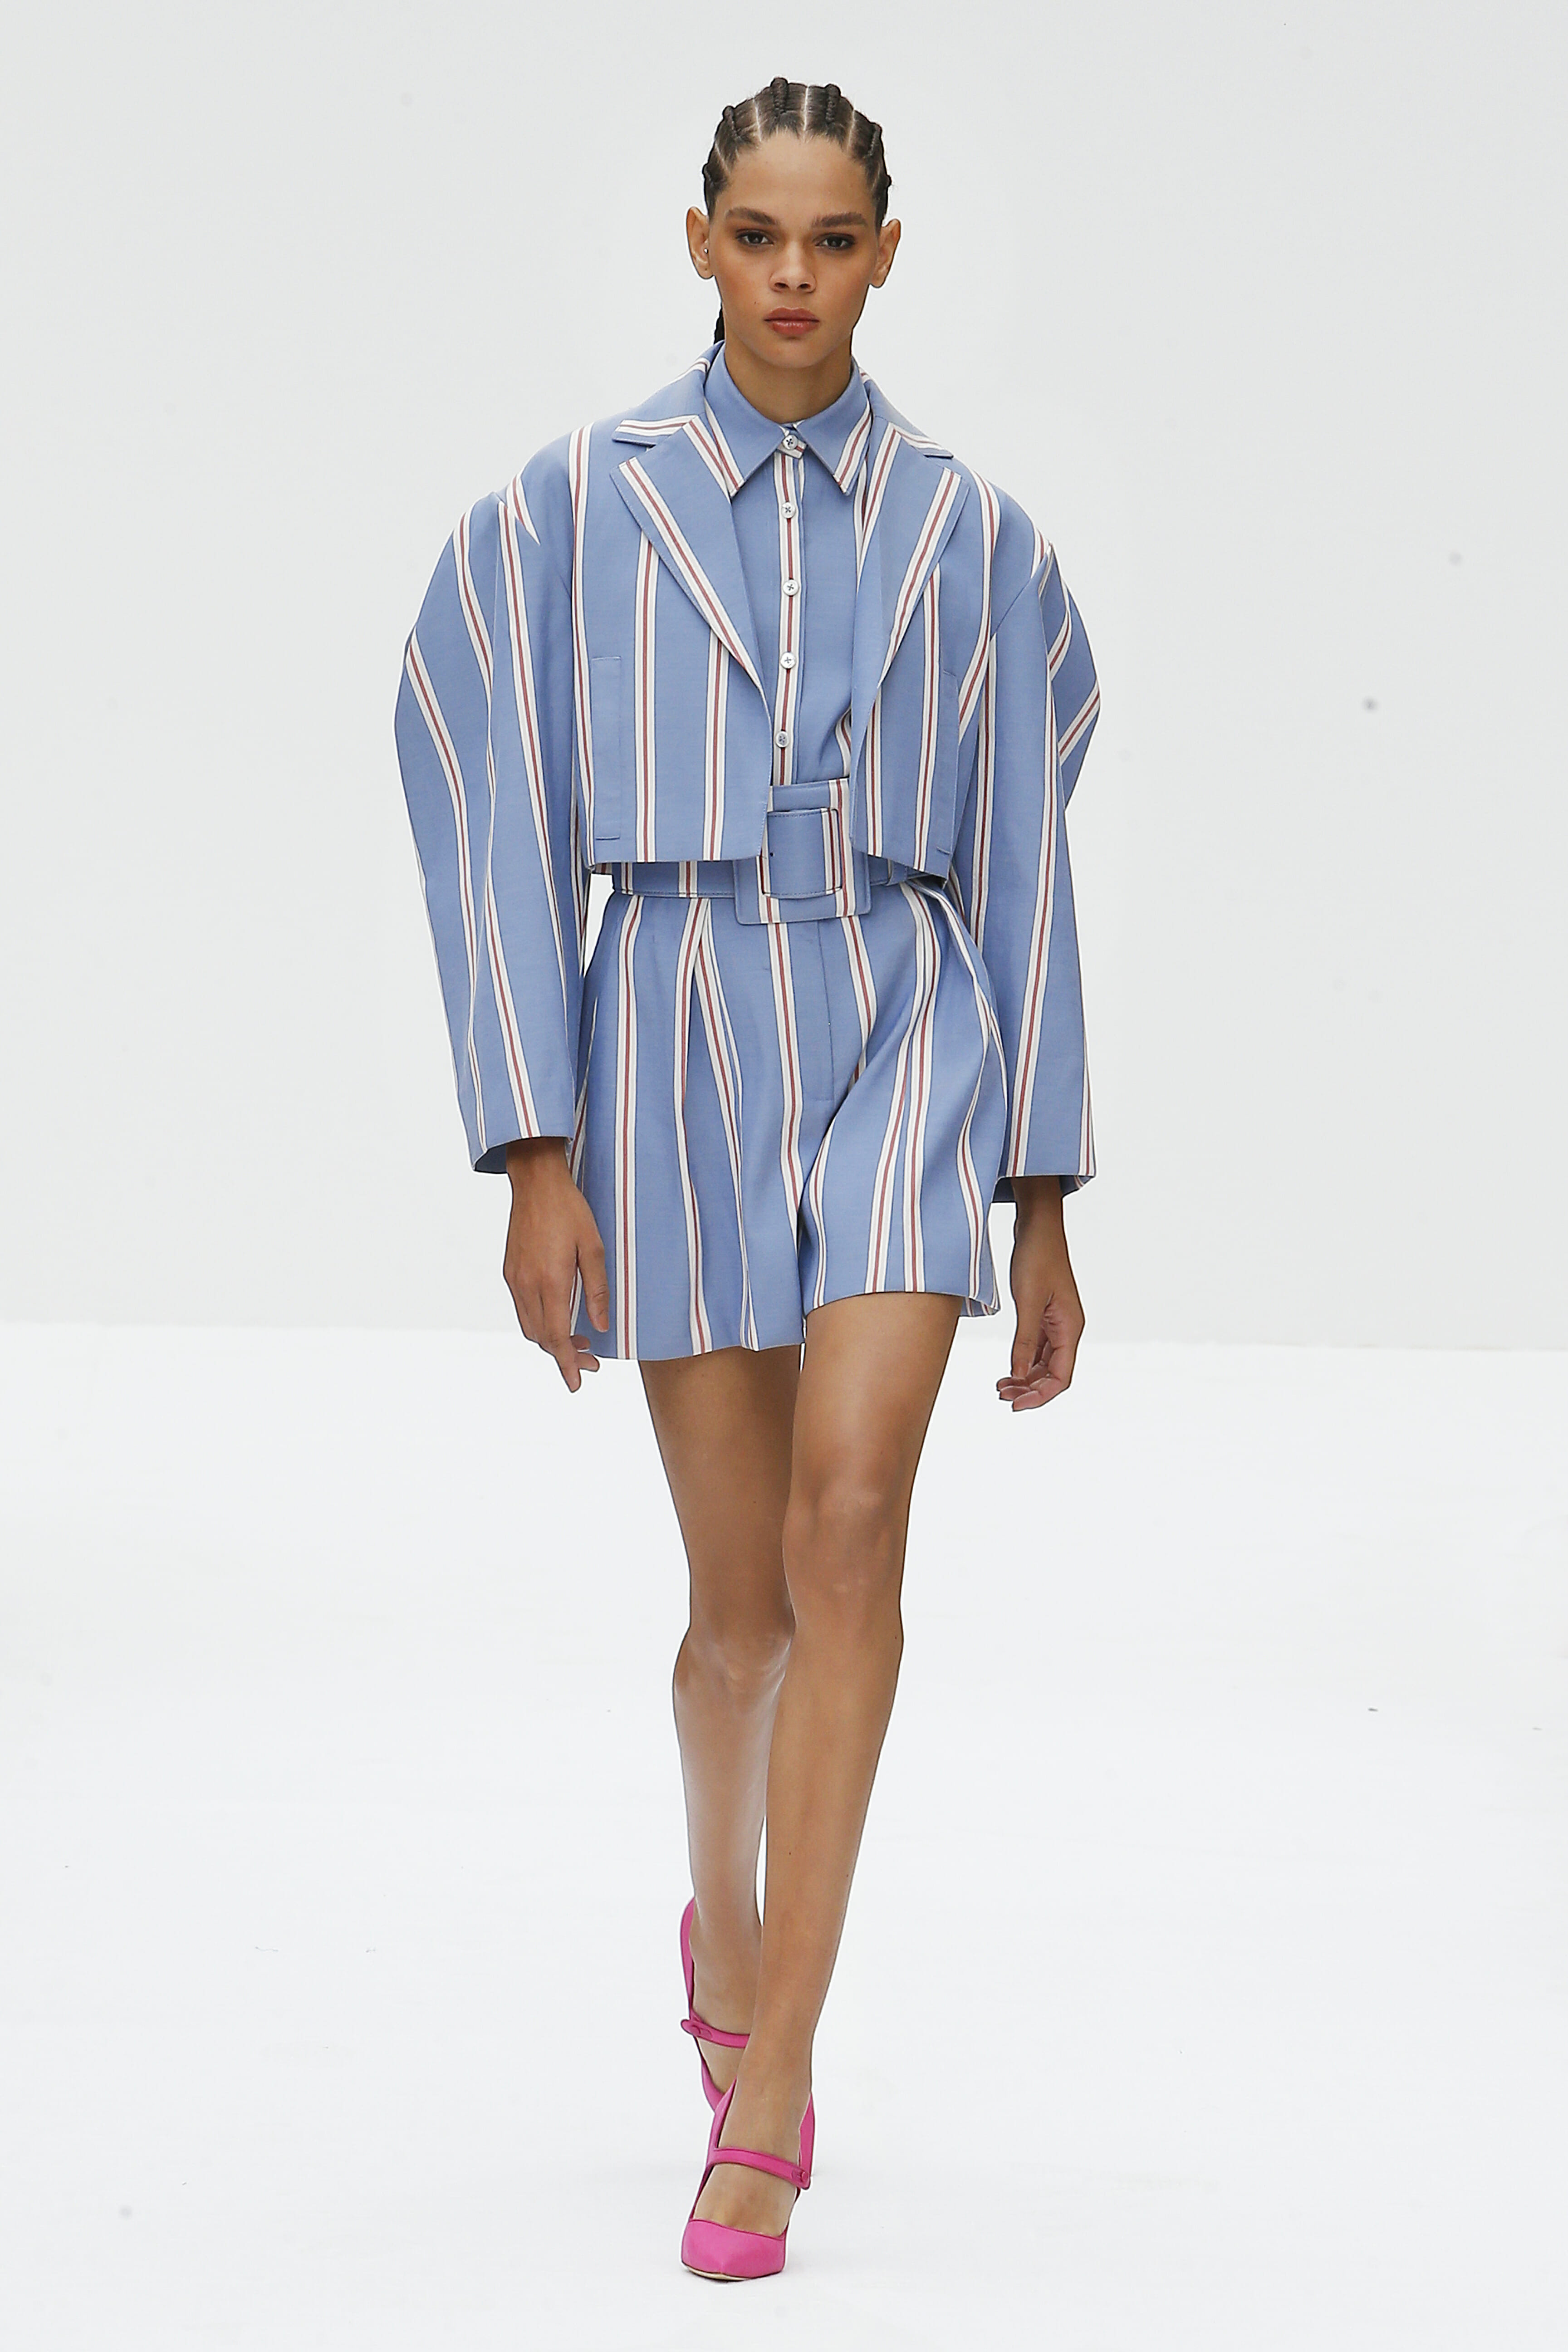 Carolina Herrera New York Spring 2020 Runway Look